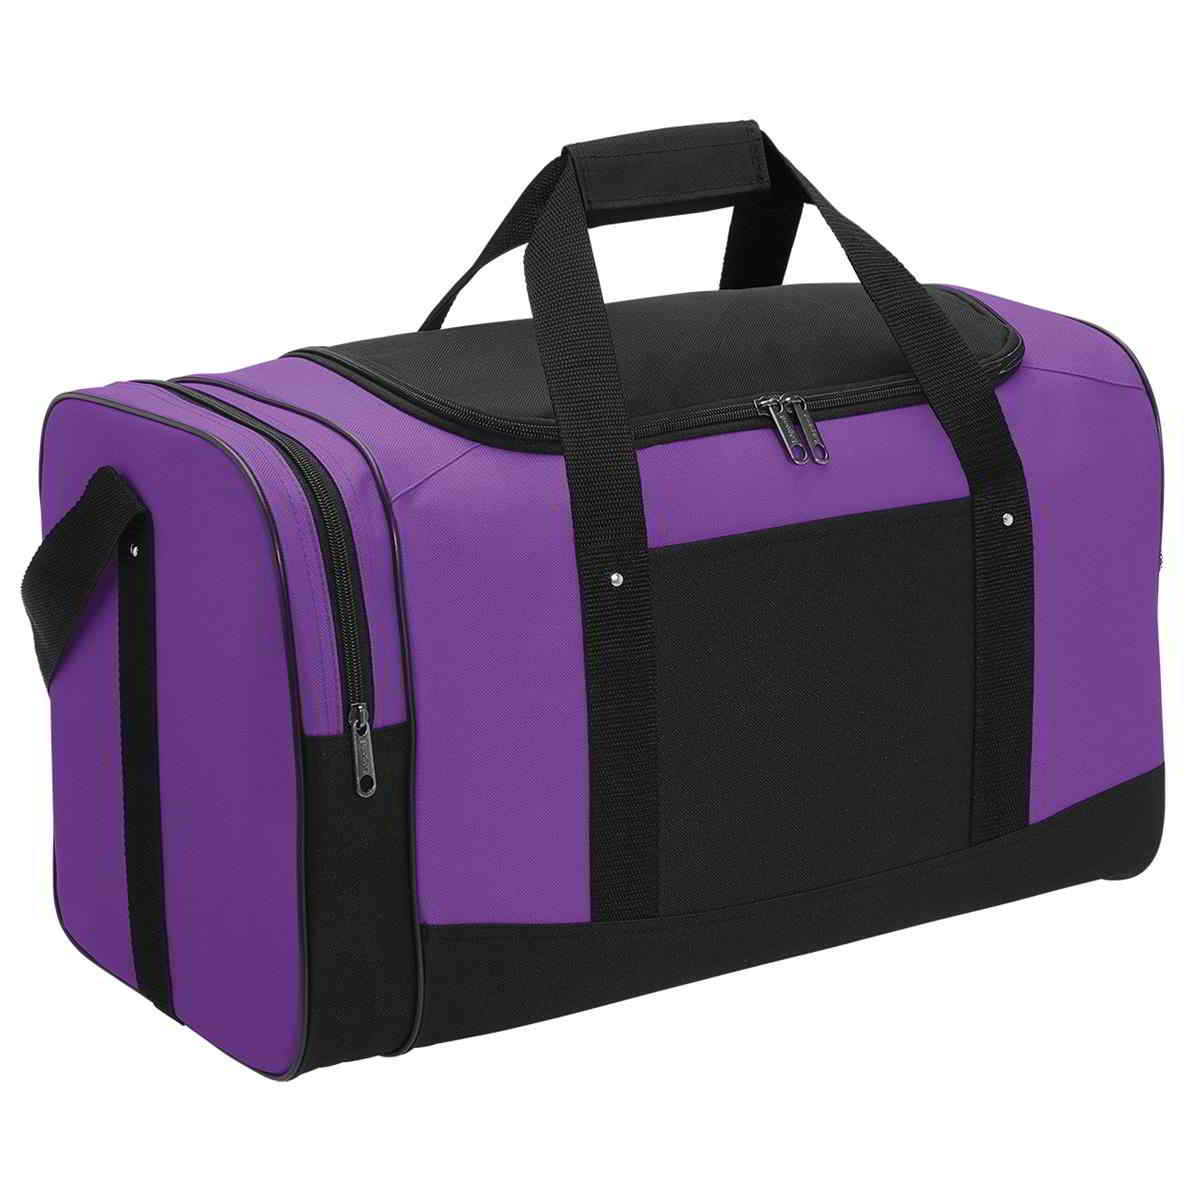 1222 Spark Sports bag Purple / Black